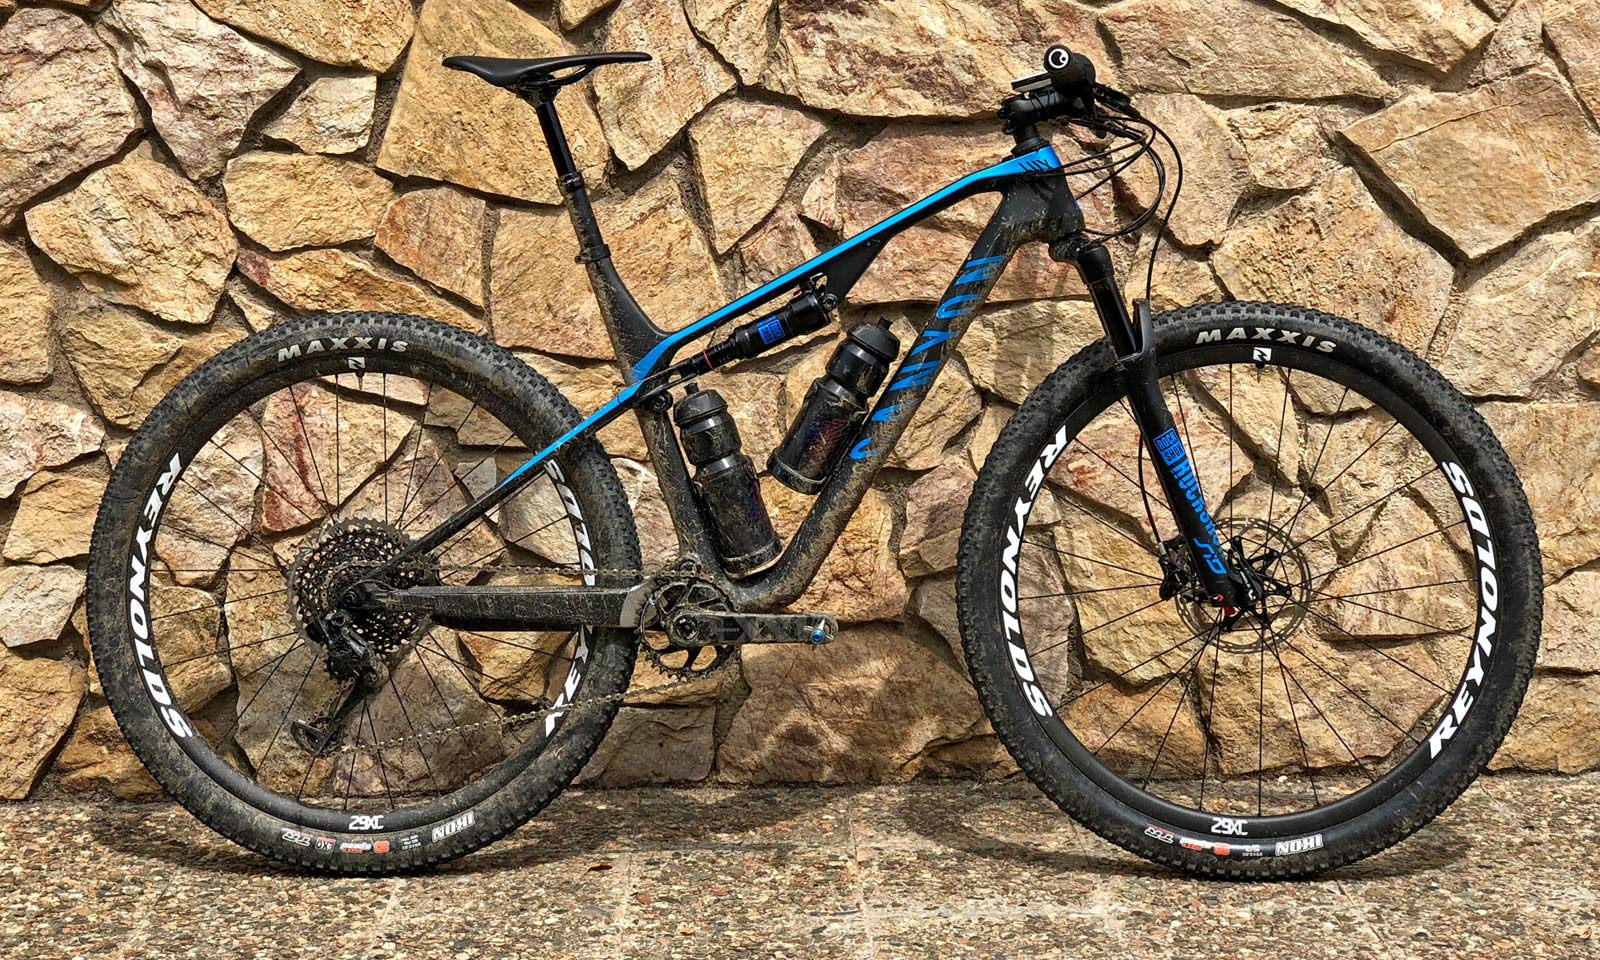 2019 Canyon Lux Reshapes Xc Xcm Race Mountain Bike With